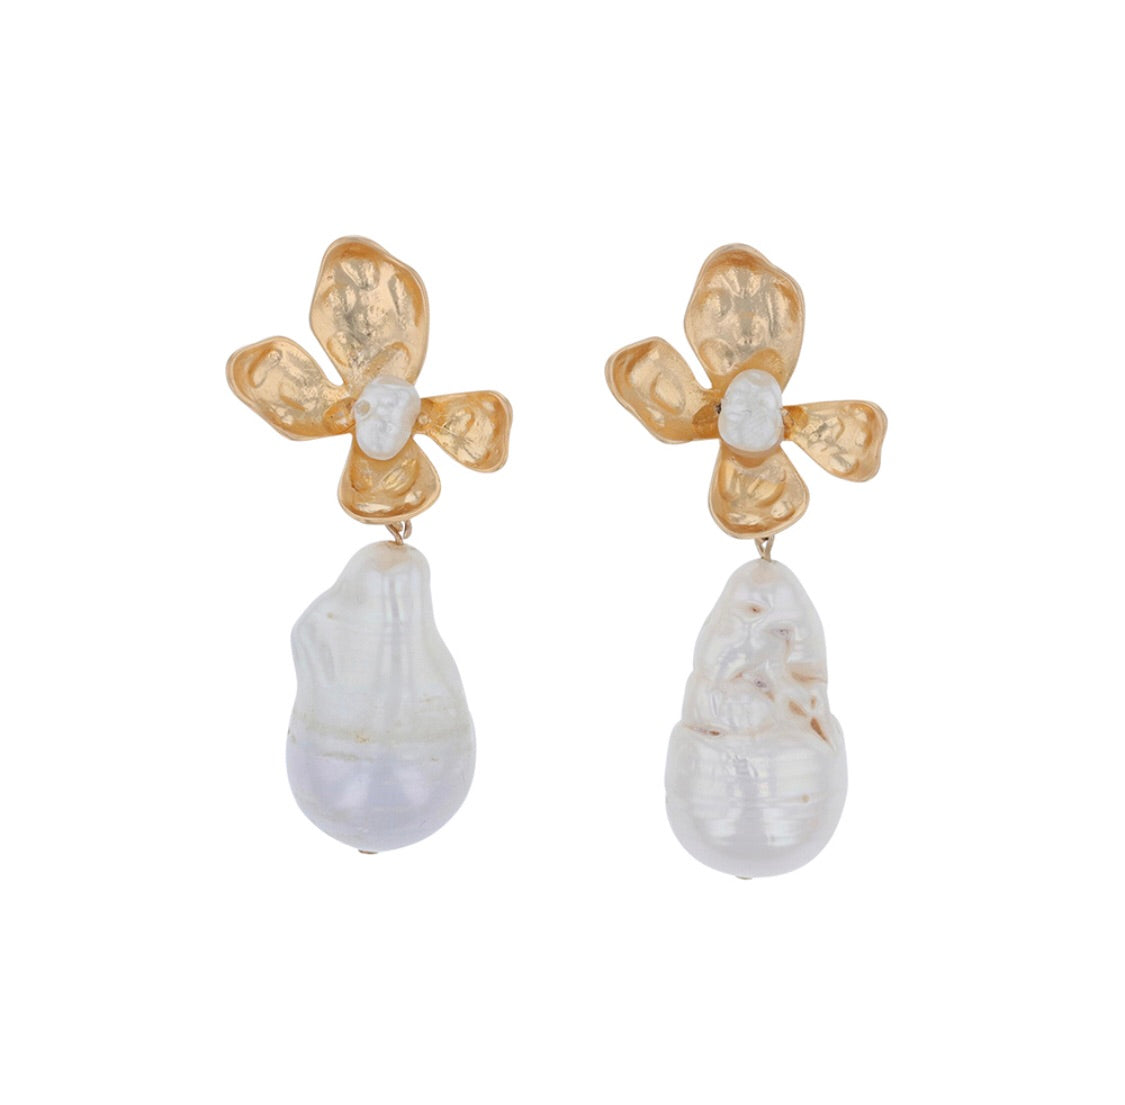 Jolie and Deen Flower Pearl Earrings